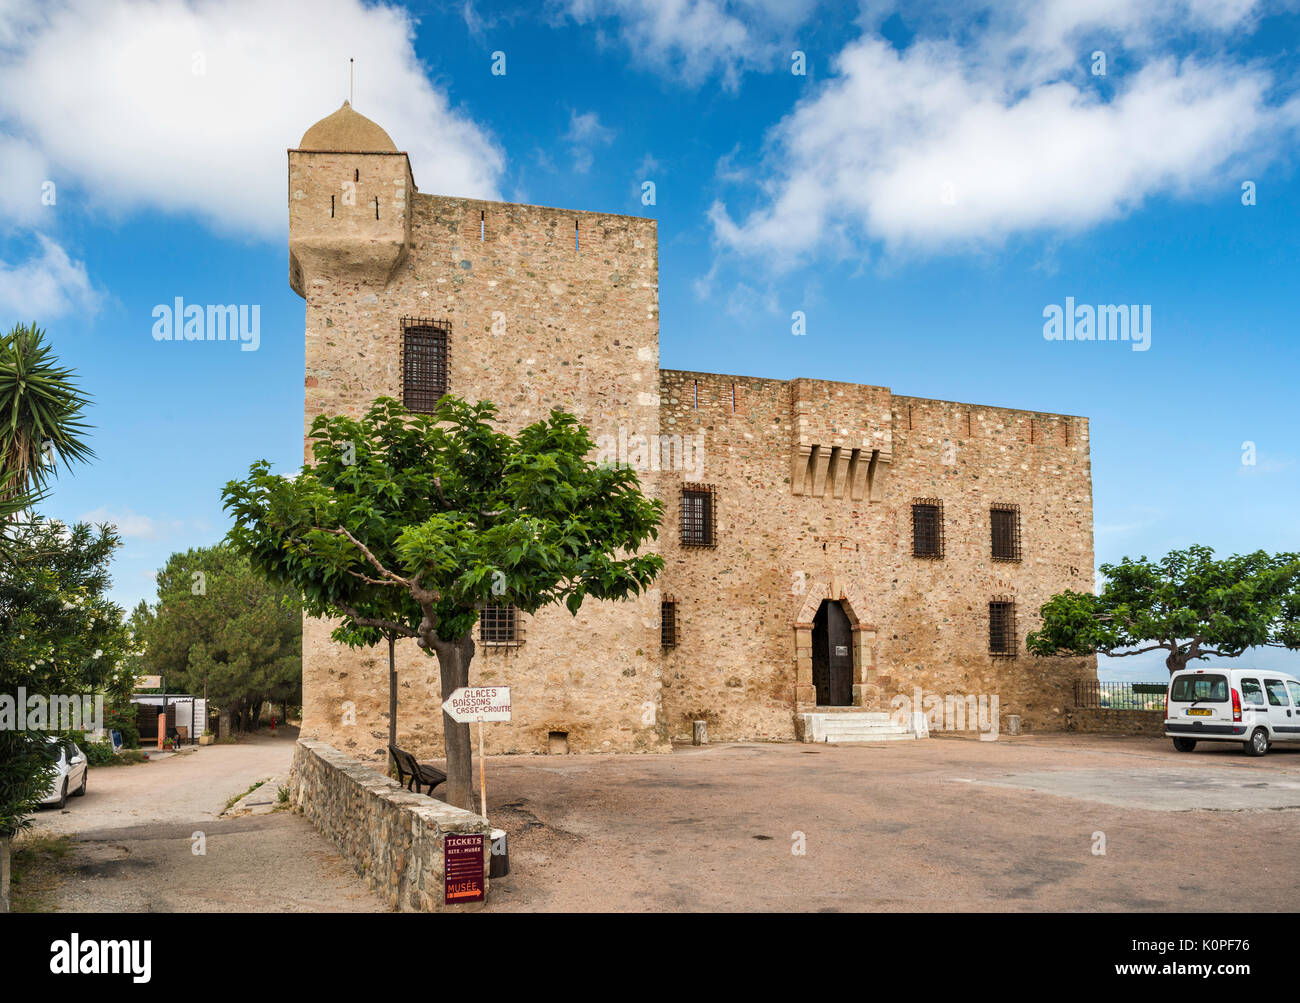 Fort de Matra, Genoese fortress, 15th century, seat of Musee Jerome-Carcopino, in Aleria, Haute-Corse, Corsica, France - Stock Image